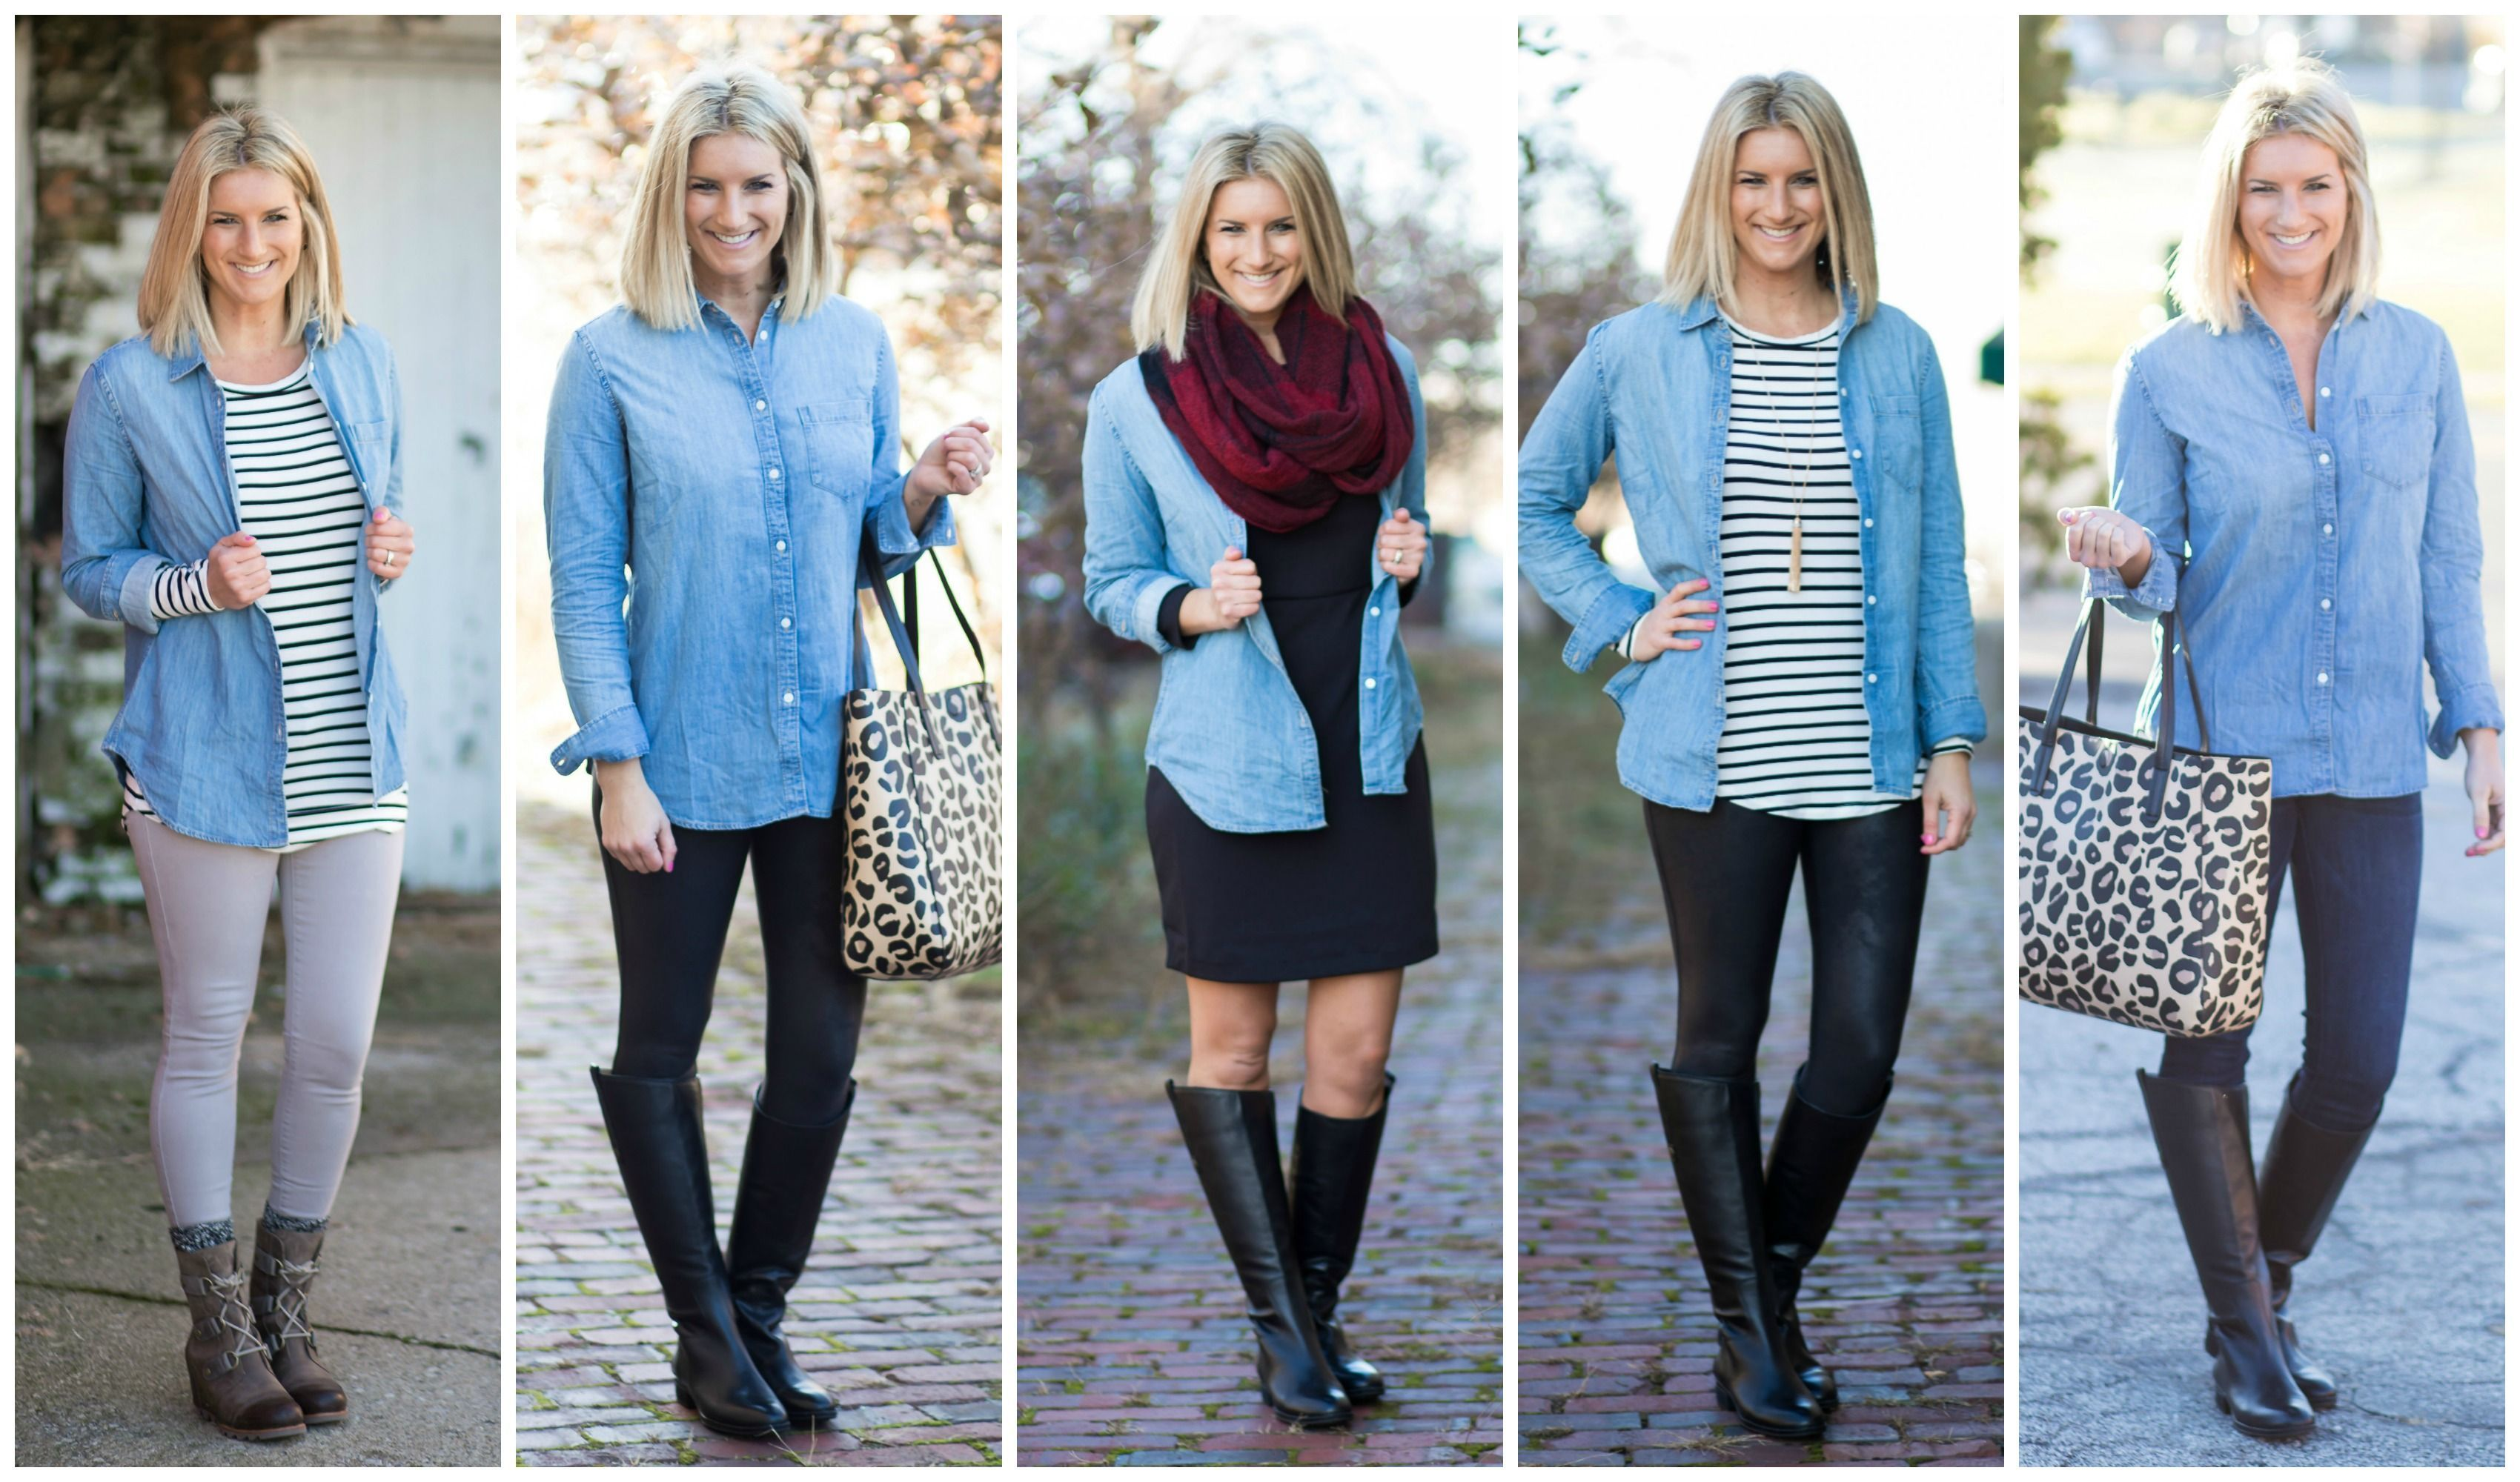 97f15b9c646 How To Build A Winter Capsule Wardrobe - Living in Yellow ...